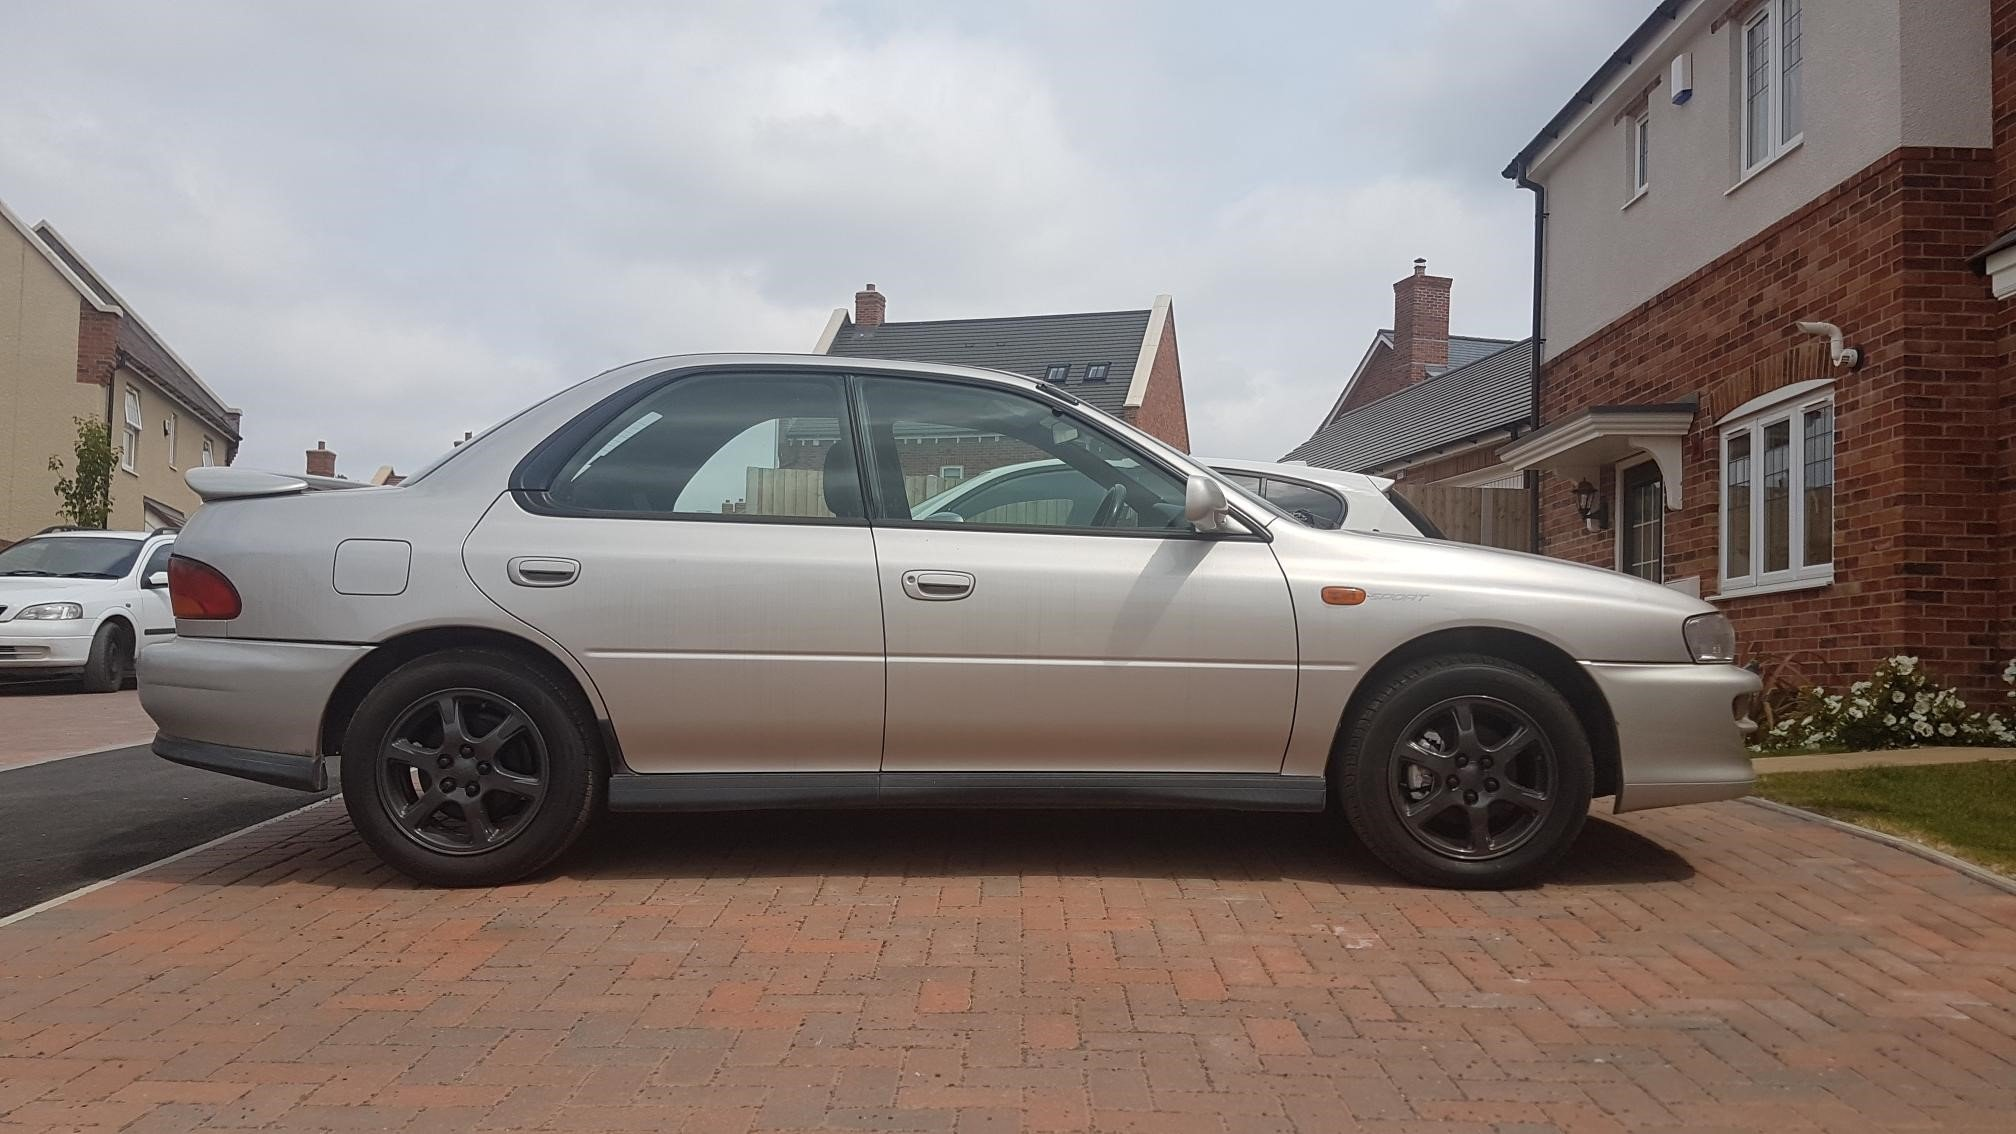 2000 Impreza Sport AWD  For Sale (picture 2 of 6)